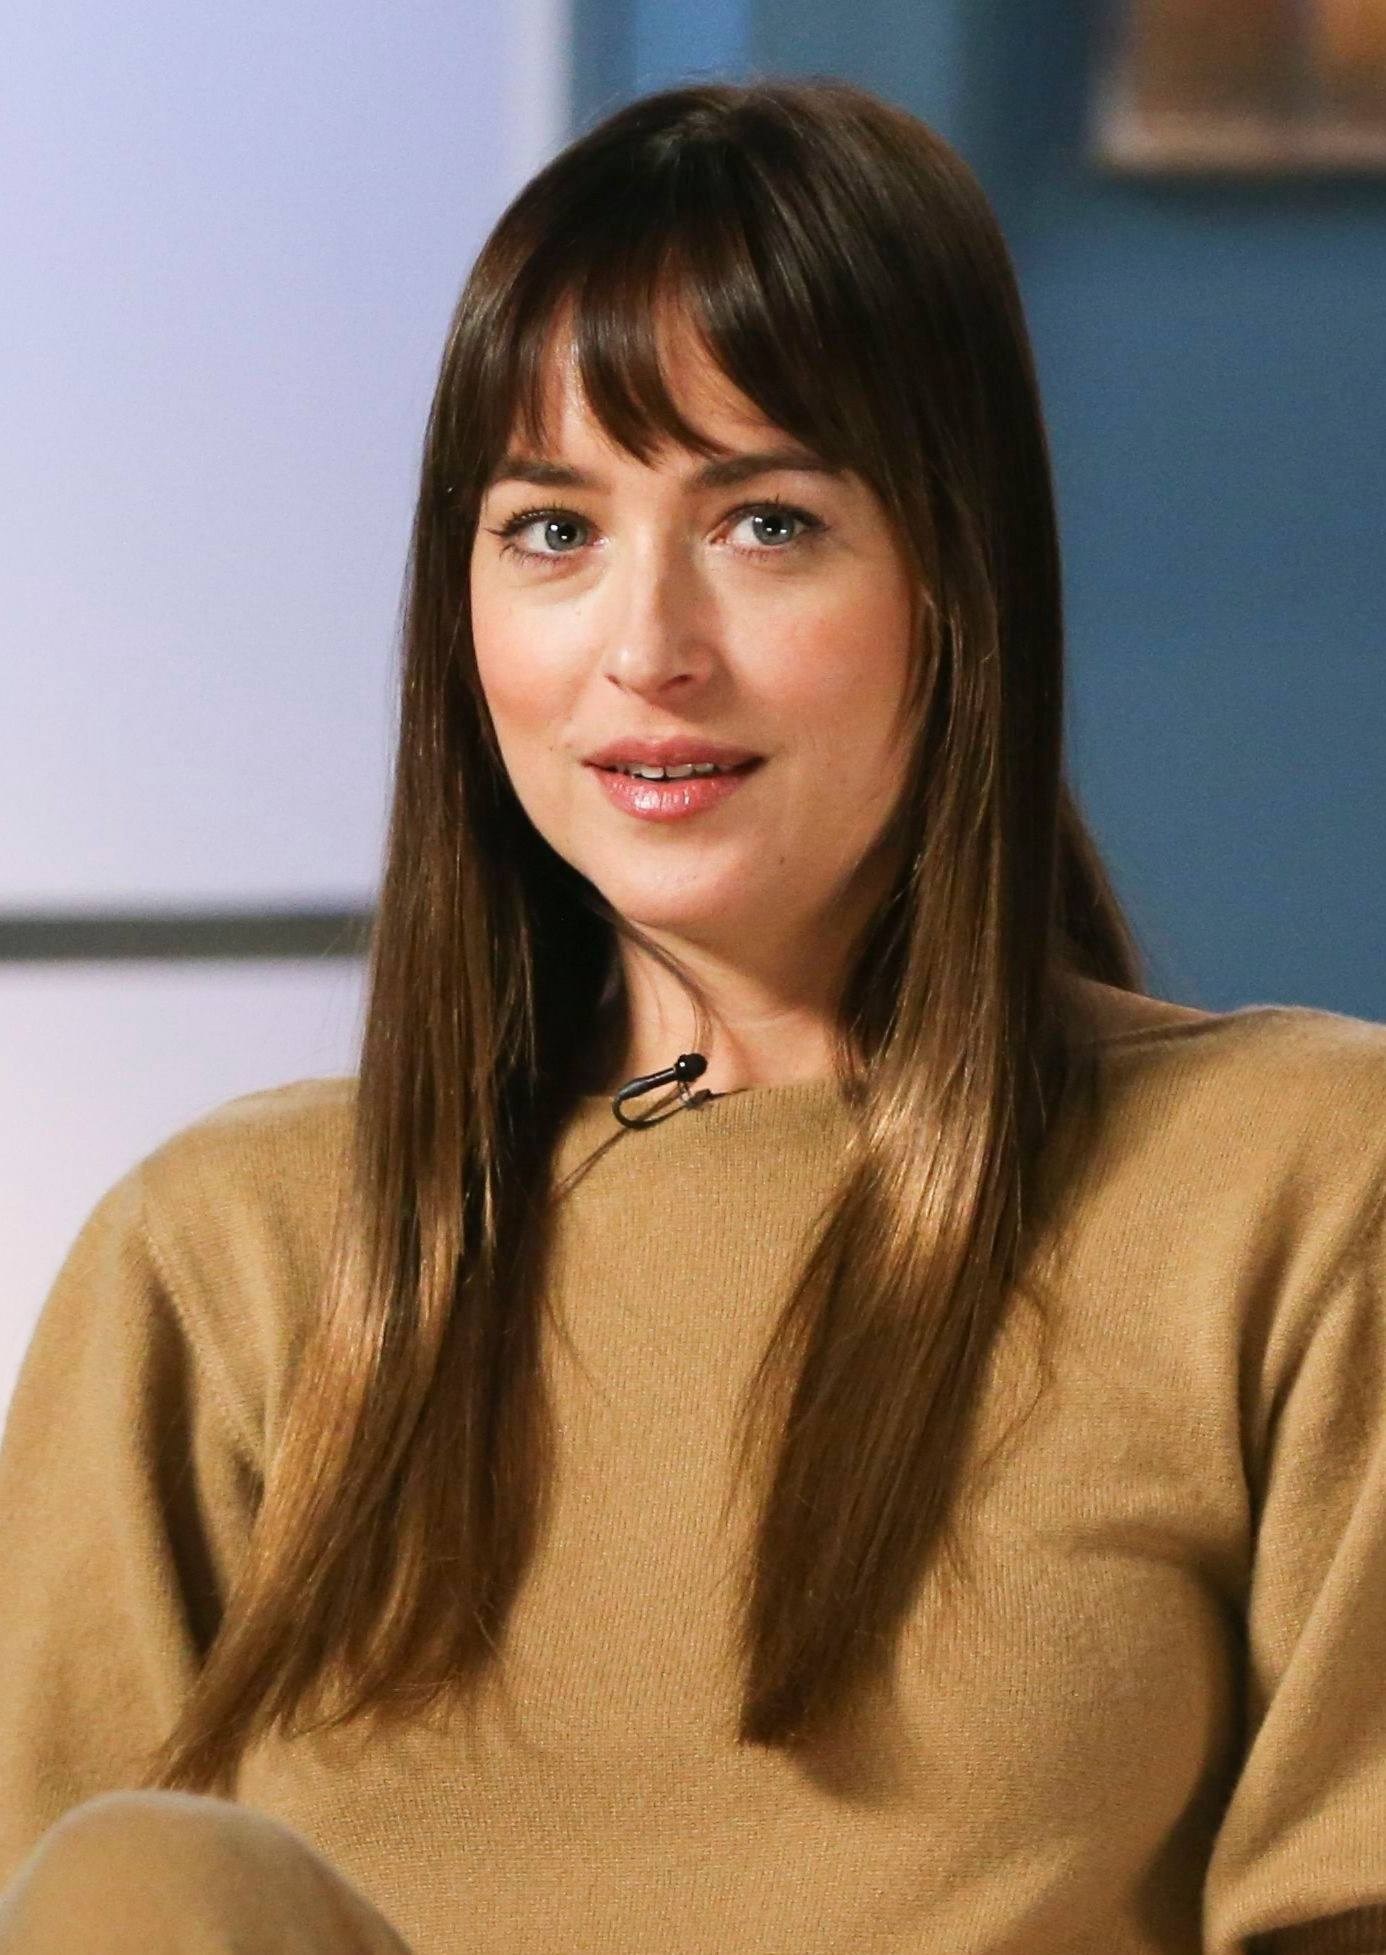 Haircuts For Fine Straight Hair Close Up Of Dakota Johnson With Long Brown